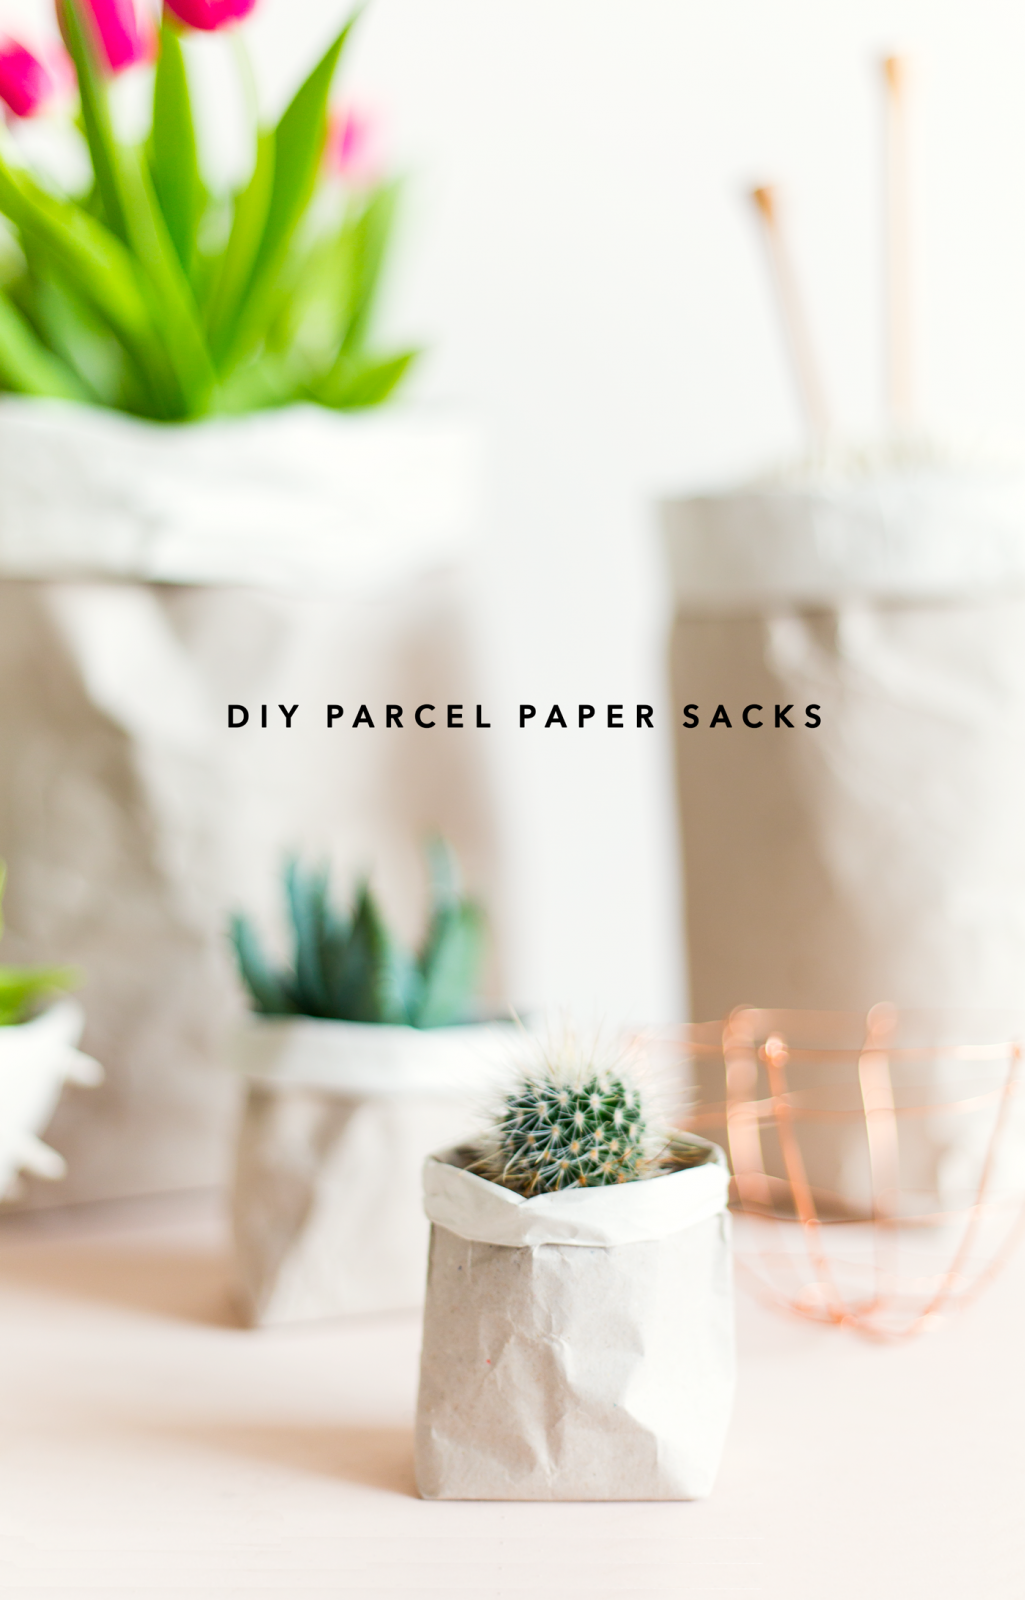 DIY-Packing-Paper-Sack-Planters-Tutorial-_-@fallfordiy-1